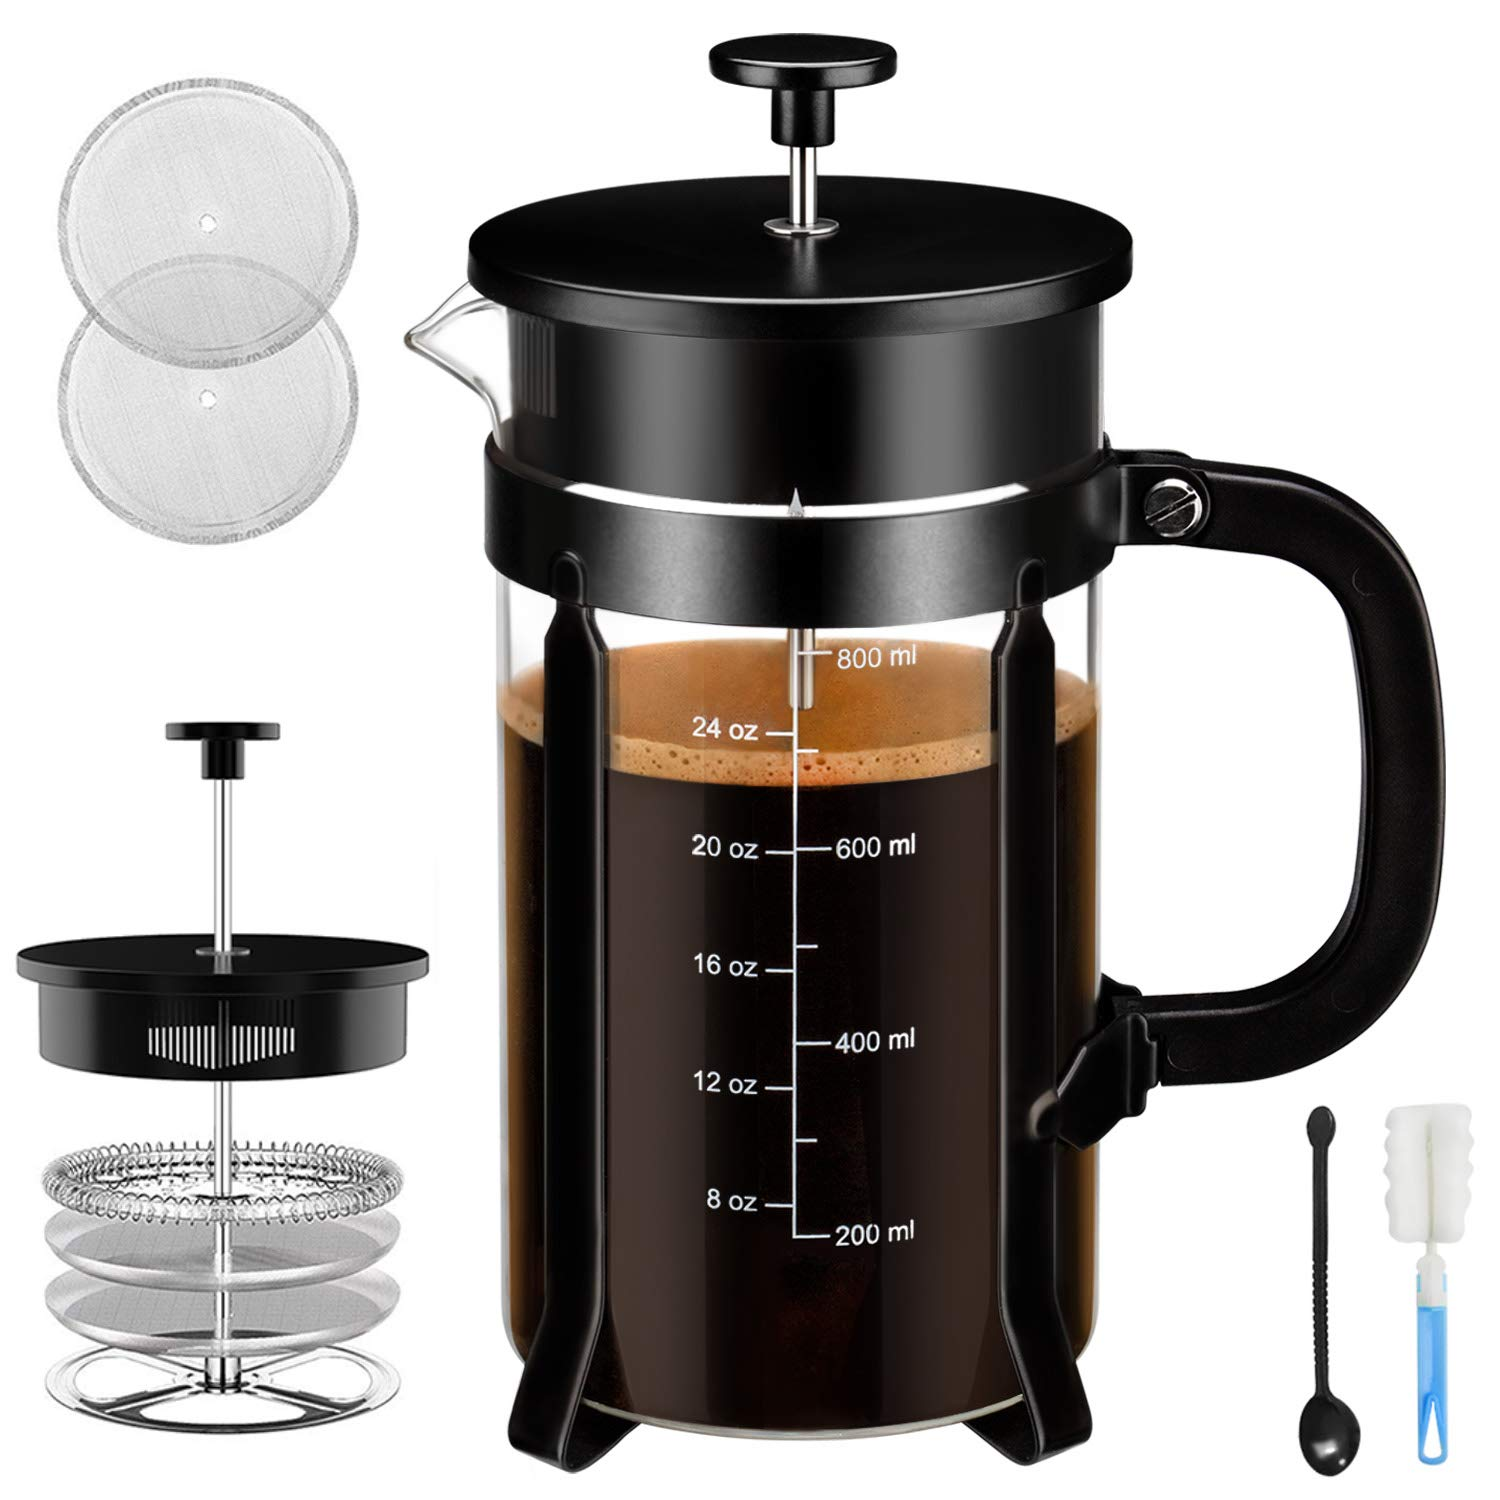 Chrider French Press Coffee Maker 34 oz 8 Cups Coffee Press with 304 Stainless Steel Stand and 4 Filter Screens, Precise Scale Easy to Clean Durable Heat Resistant Borosilicate Glass – Black